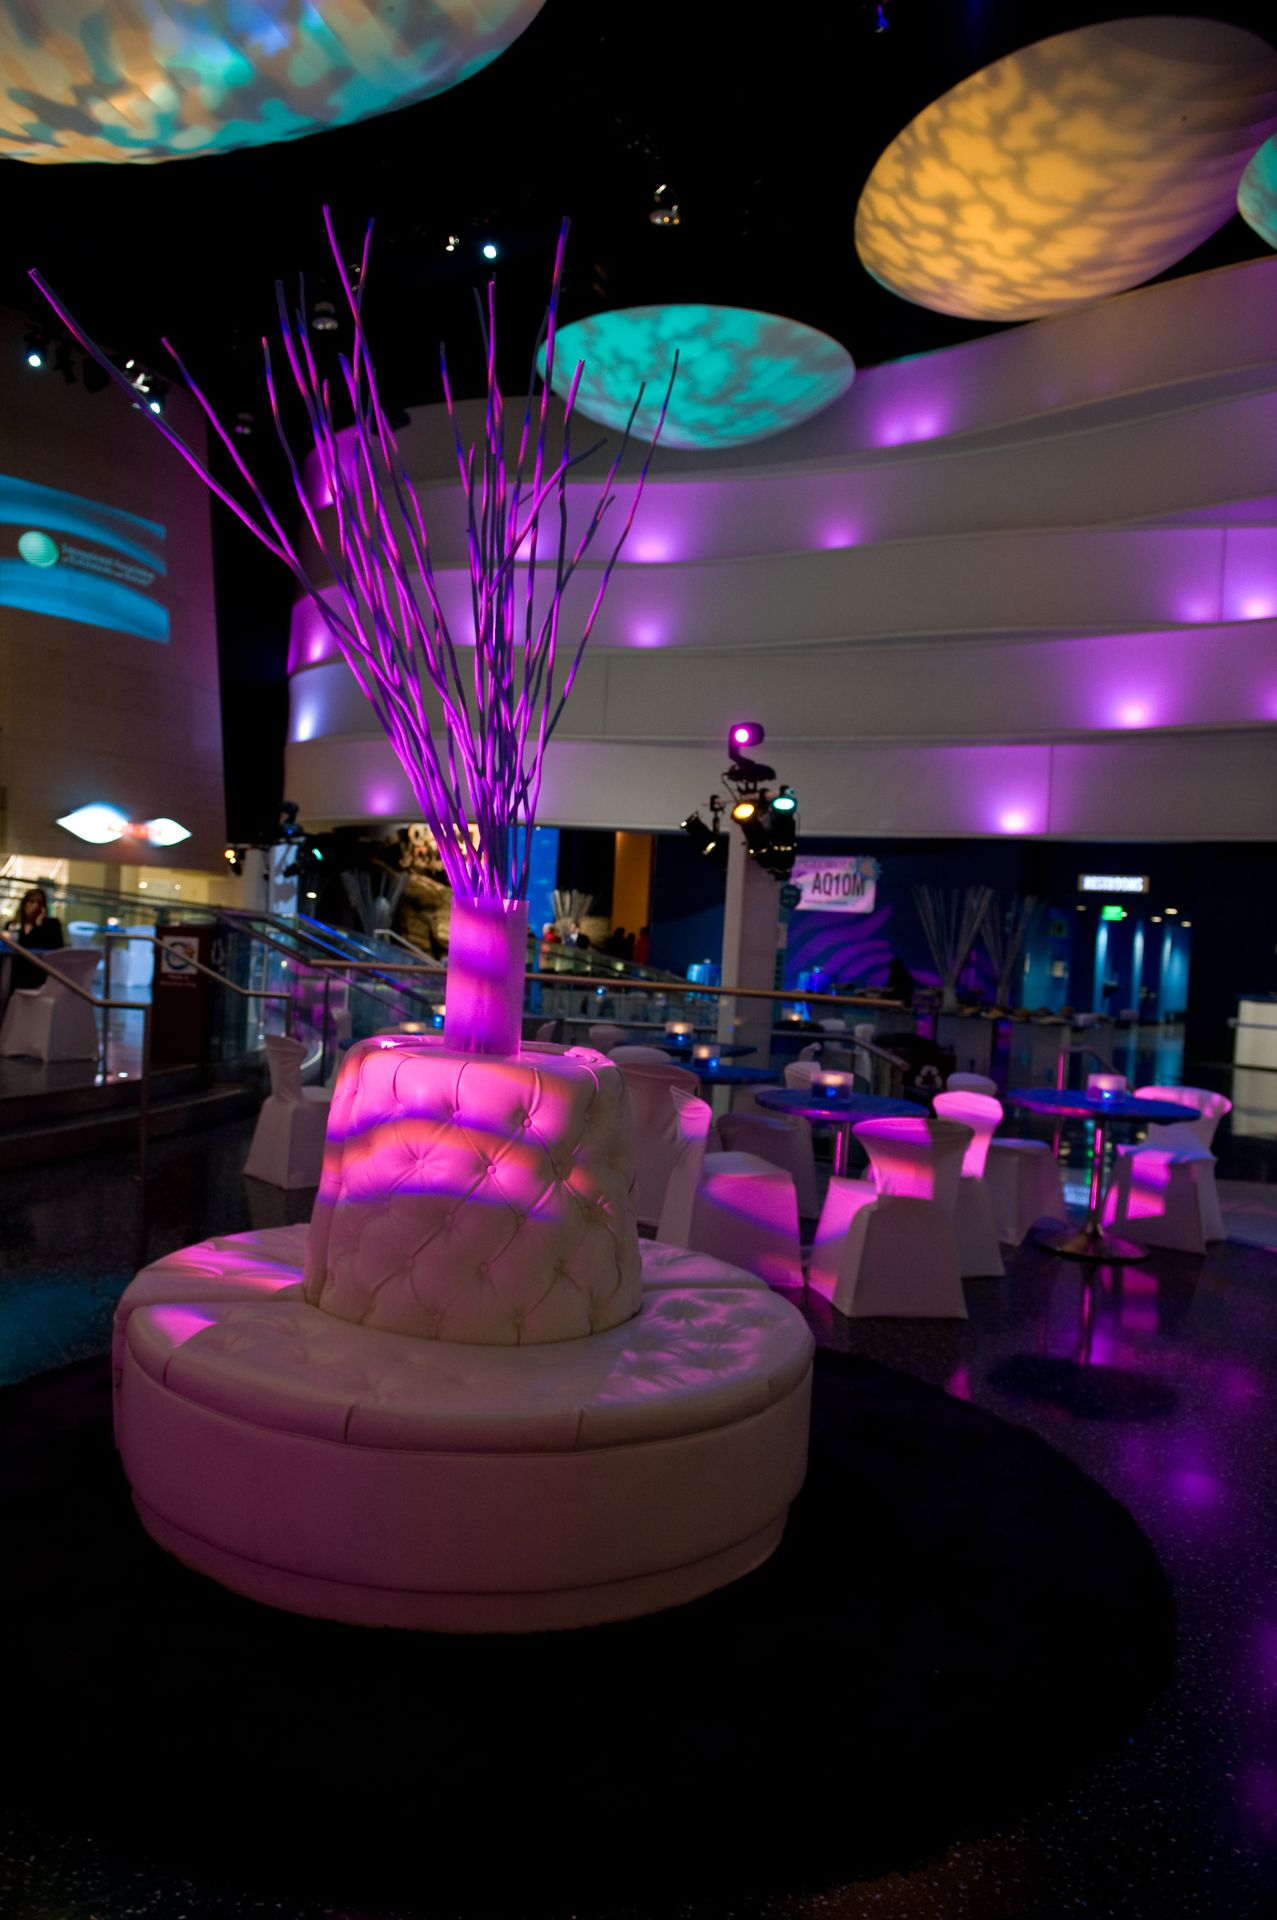 Atrium - Lounge and Tables